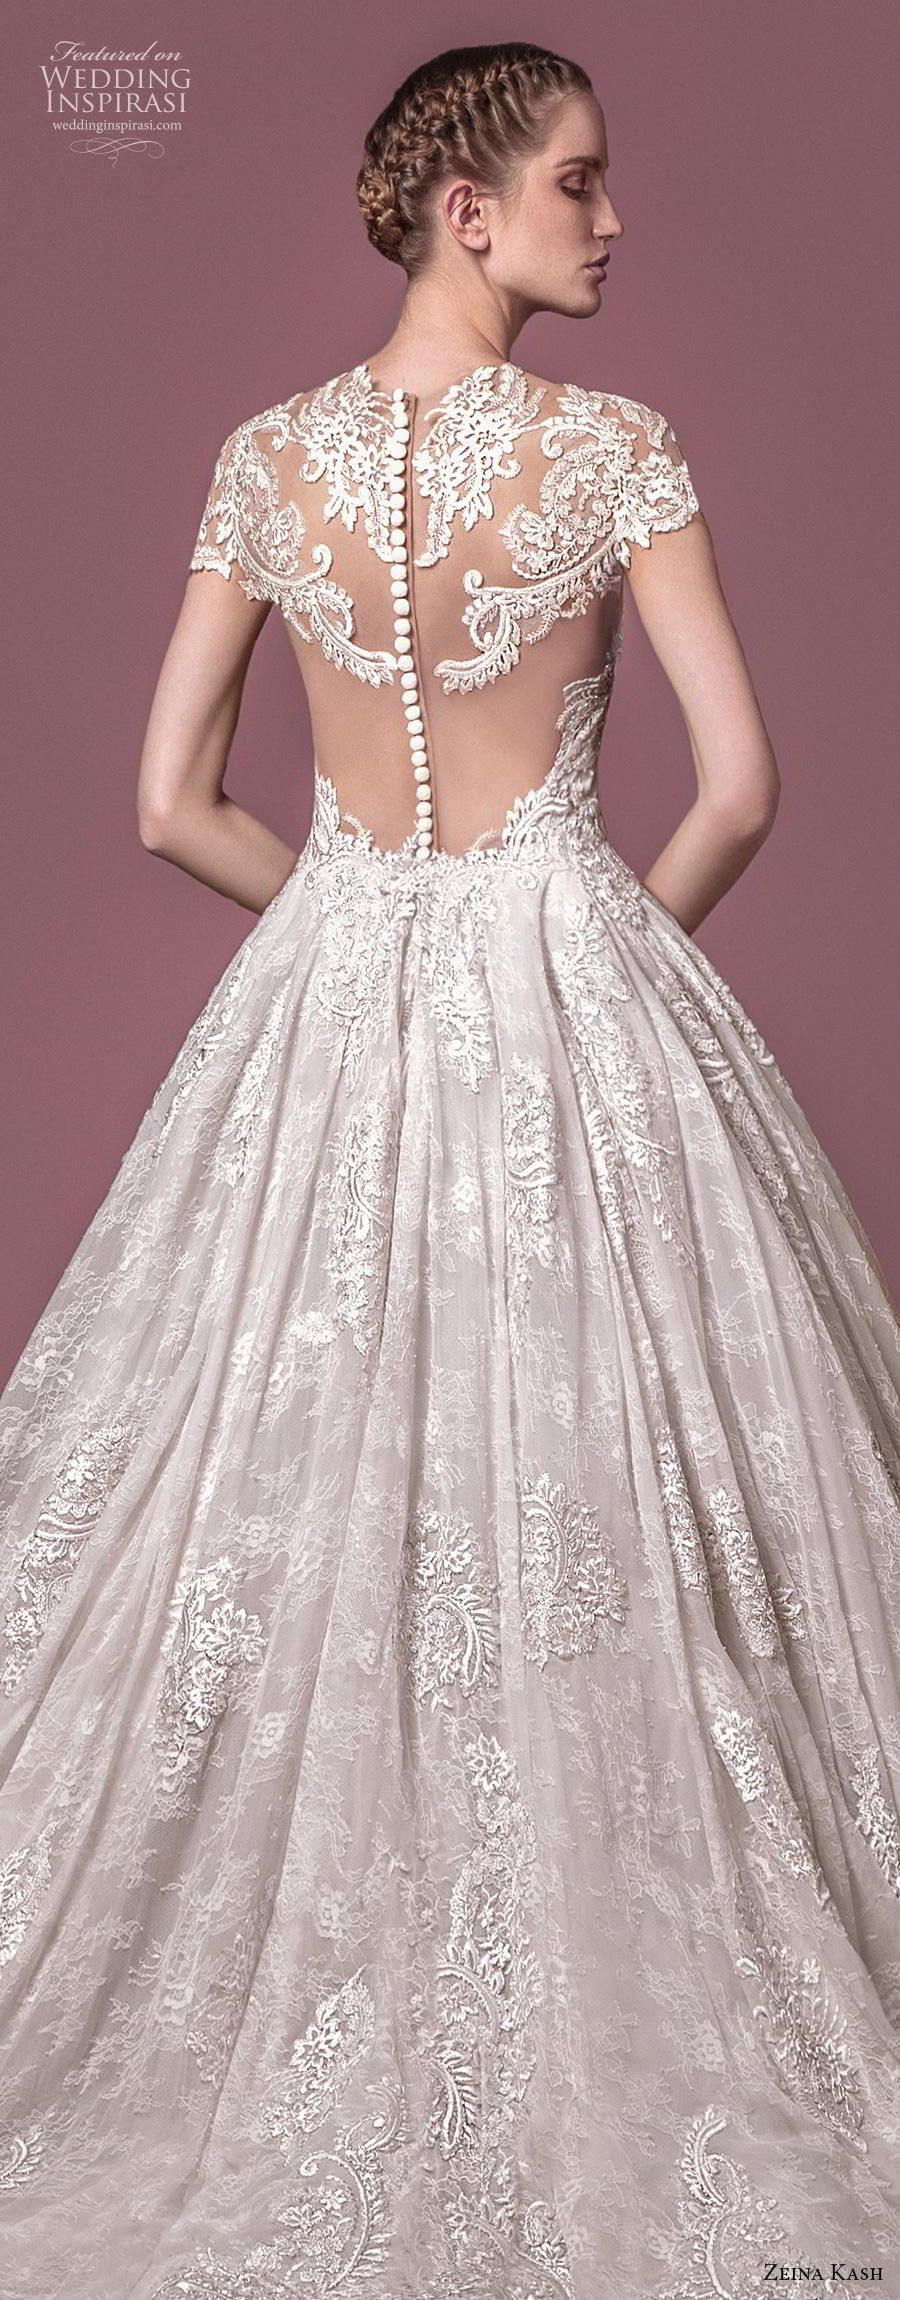 Lace wedding dress with cap sleeves sweetheart neckline  Zeina Kash  Wedding Dresses  wedding dress  Pinterest  Chapel